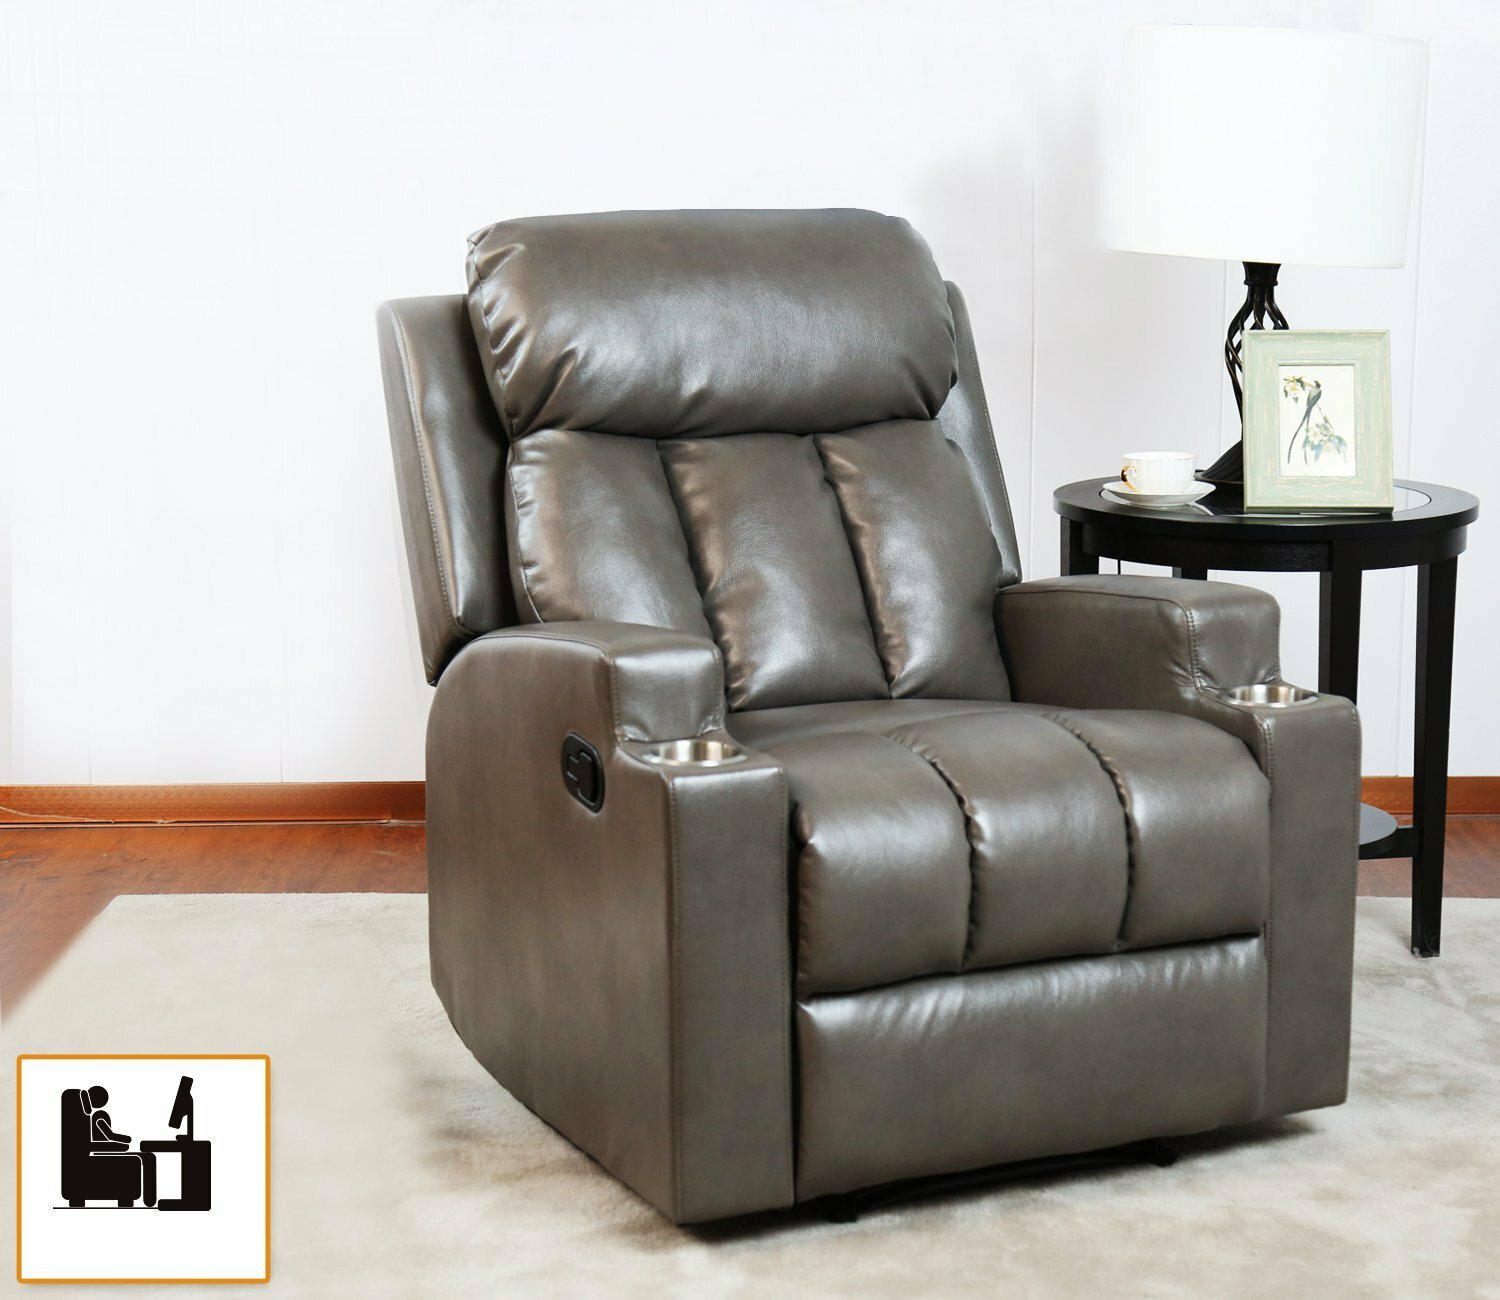 Winston porter bonzy recliner chair contemporary theatre seating 2 cup holder grey leather chair for modern living room durable framework reviews